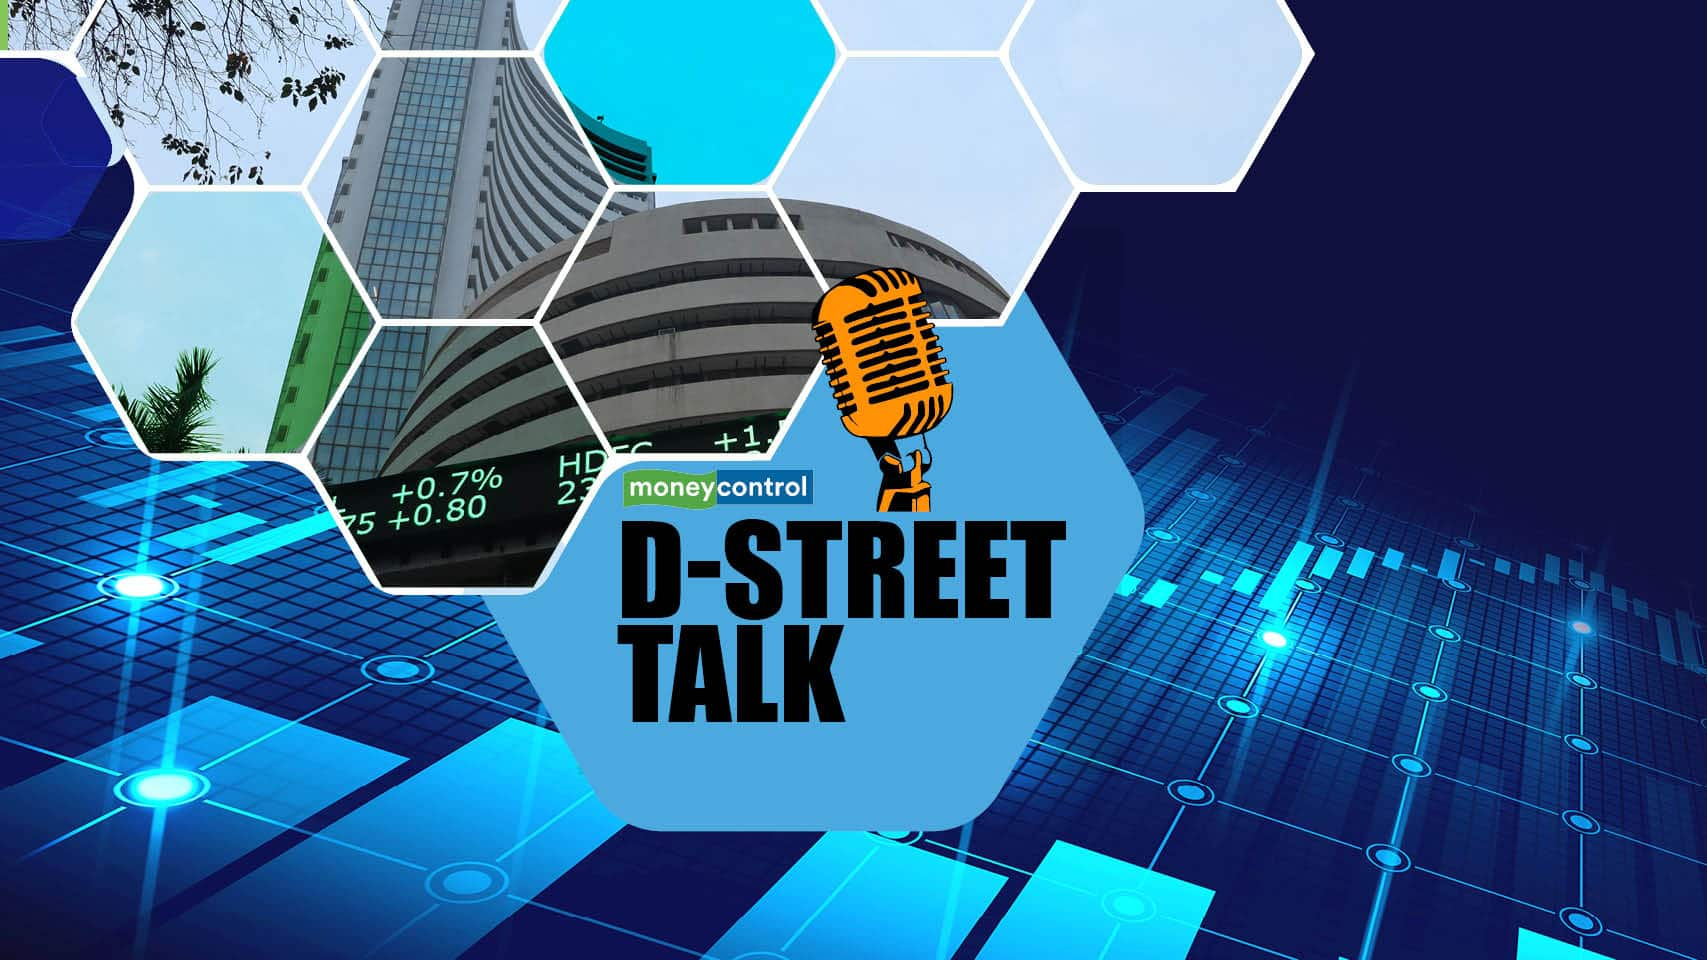 D-Street Talk Podcast | Possible to make a backup exchange to safeguard traders in times of glitch: Dipan Mehta